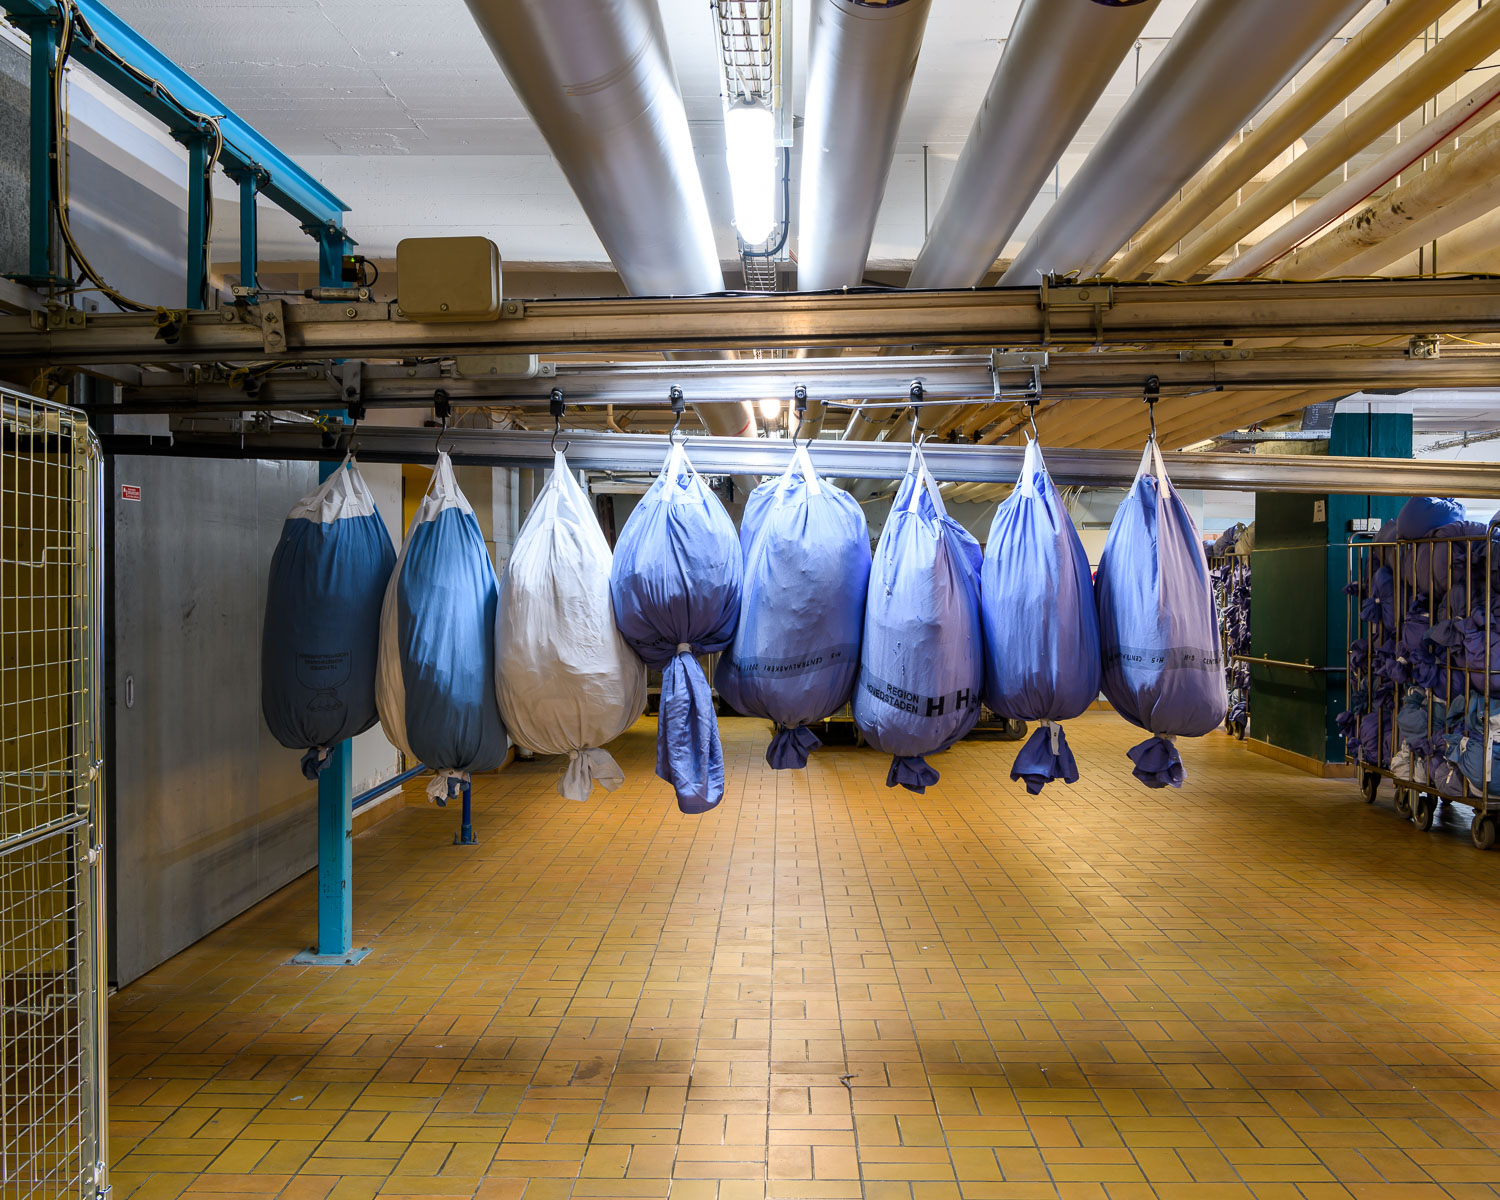 The soiled laundry bags are hung